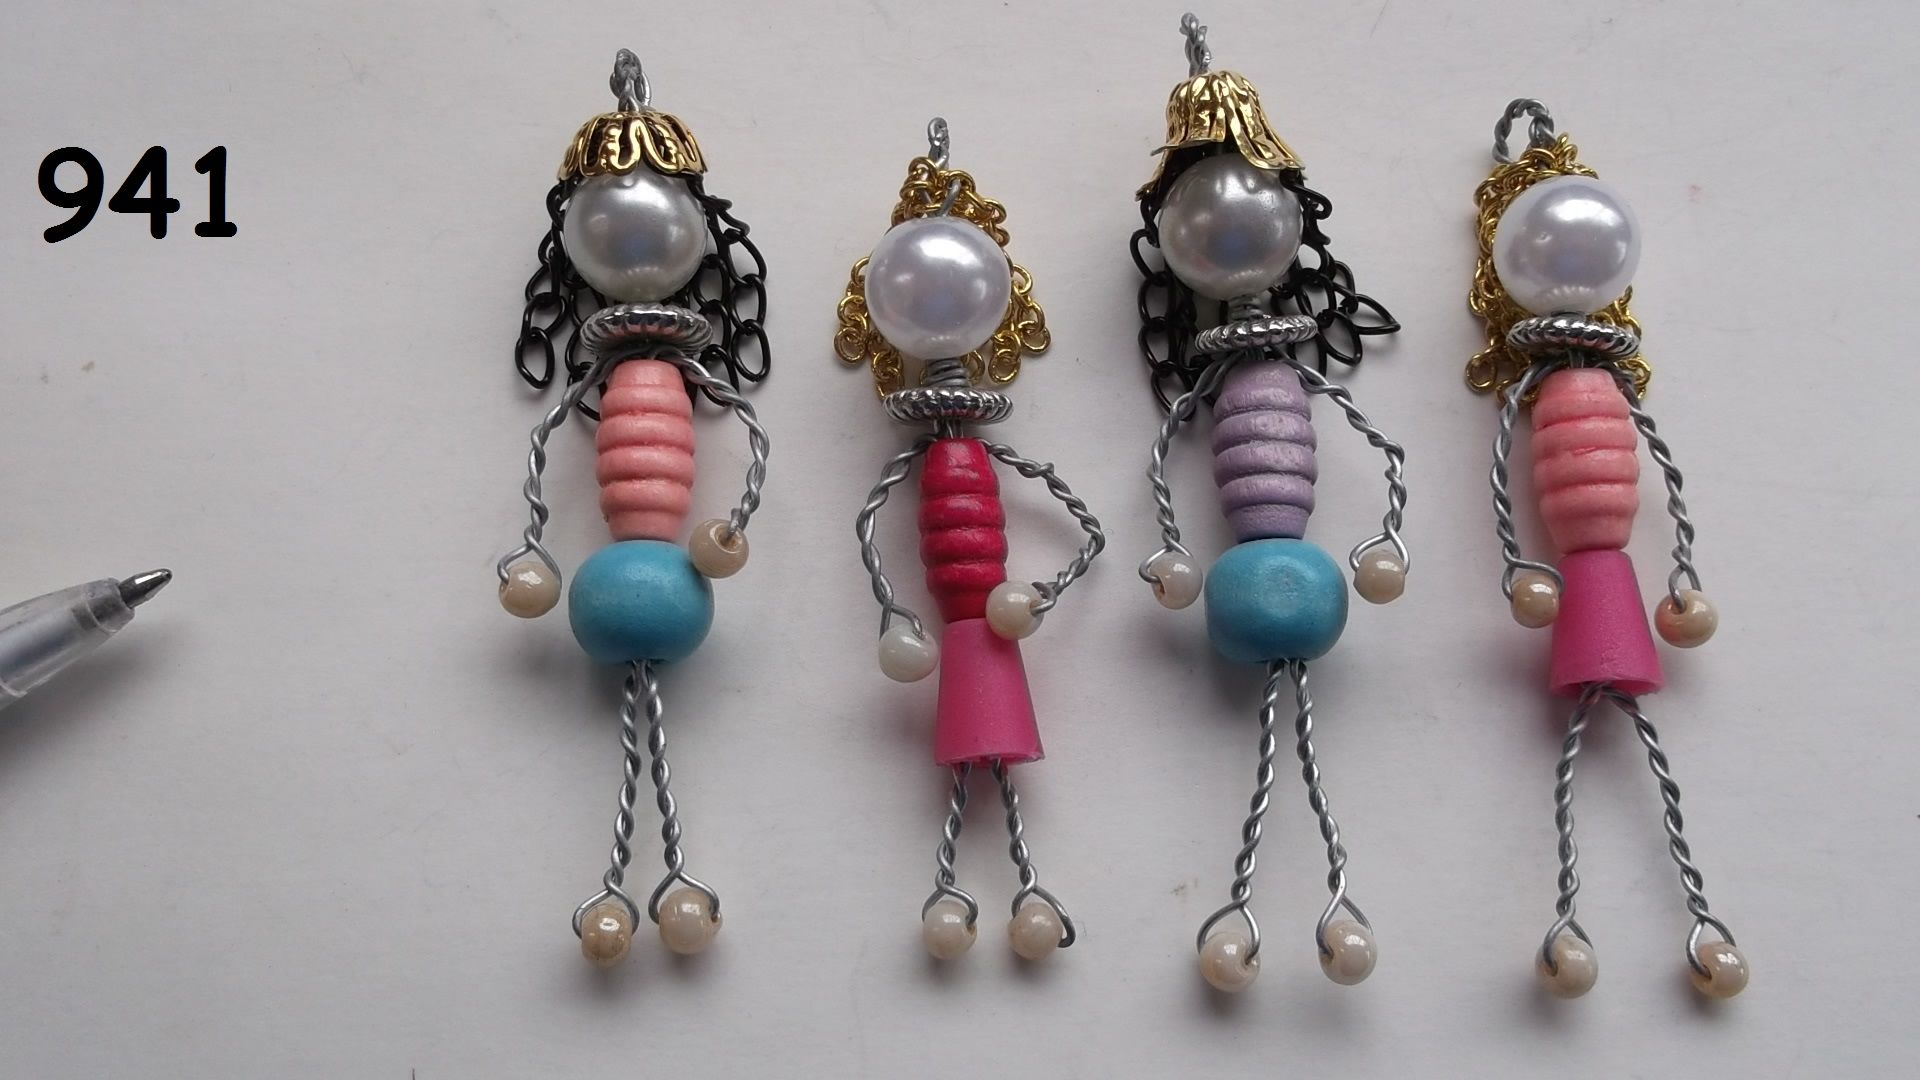 No.941 - four wire and bead people - Wire and Bead BeadBugs - Jill ...